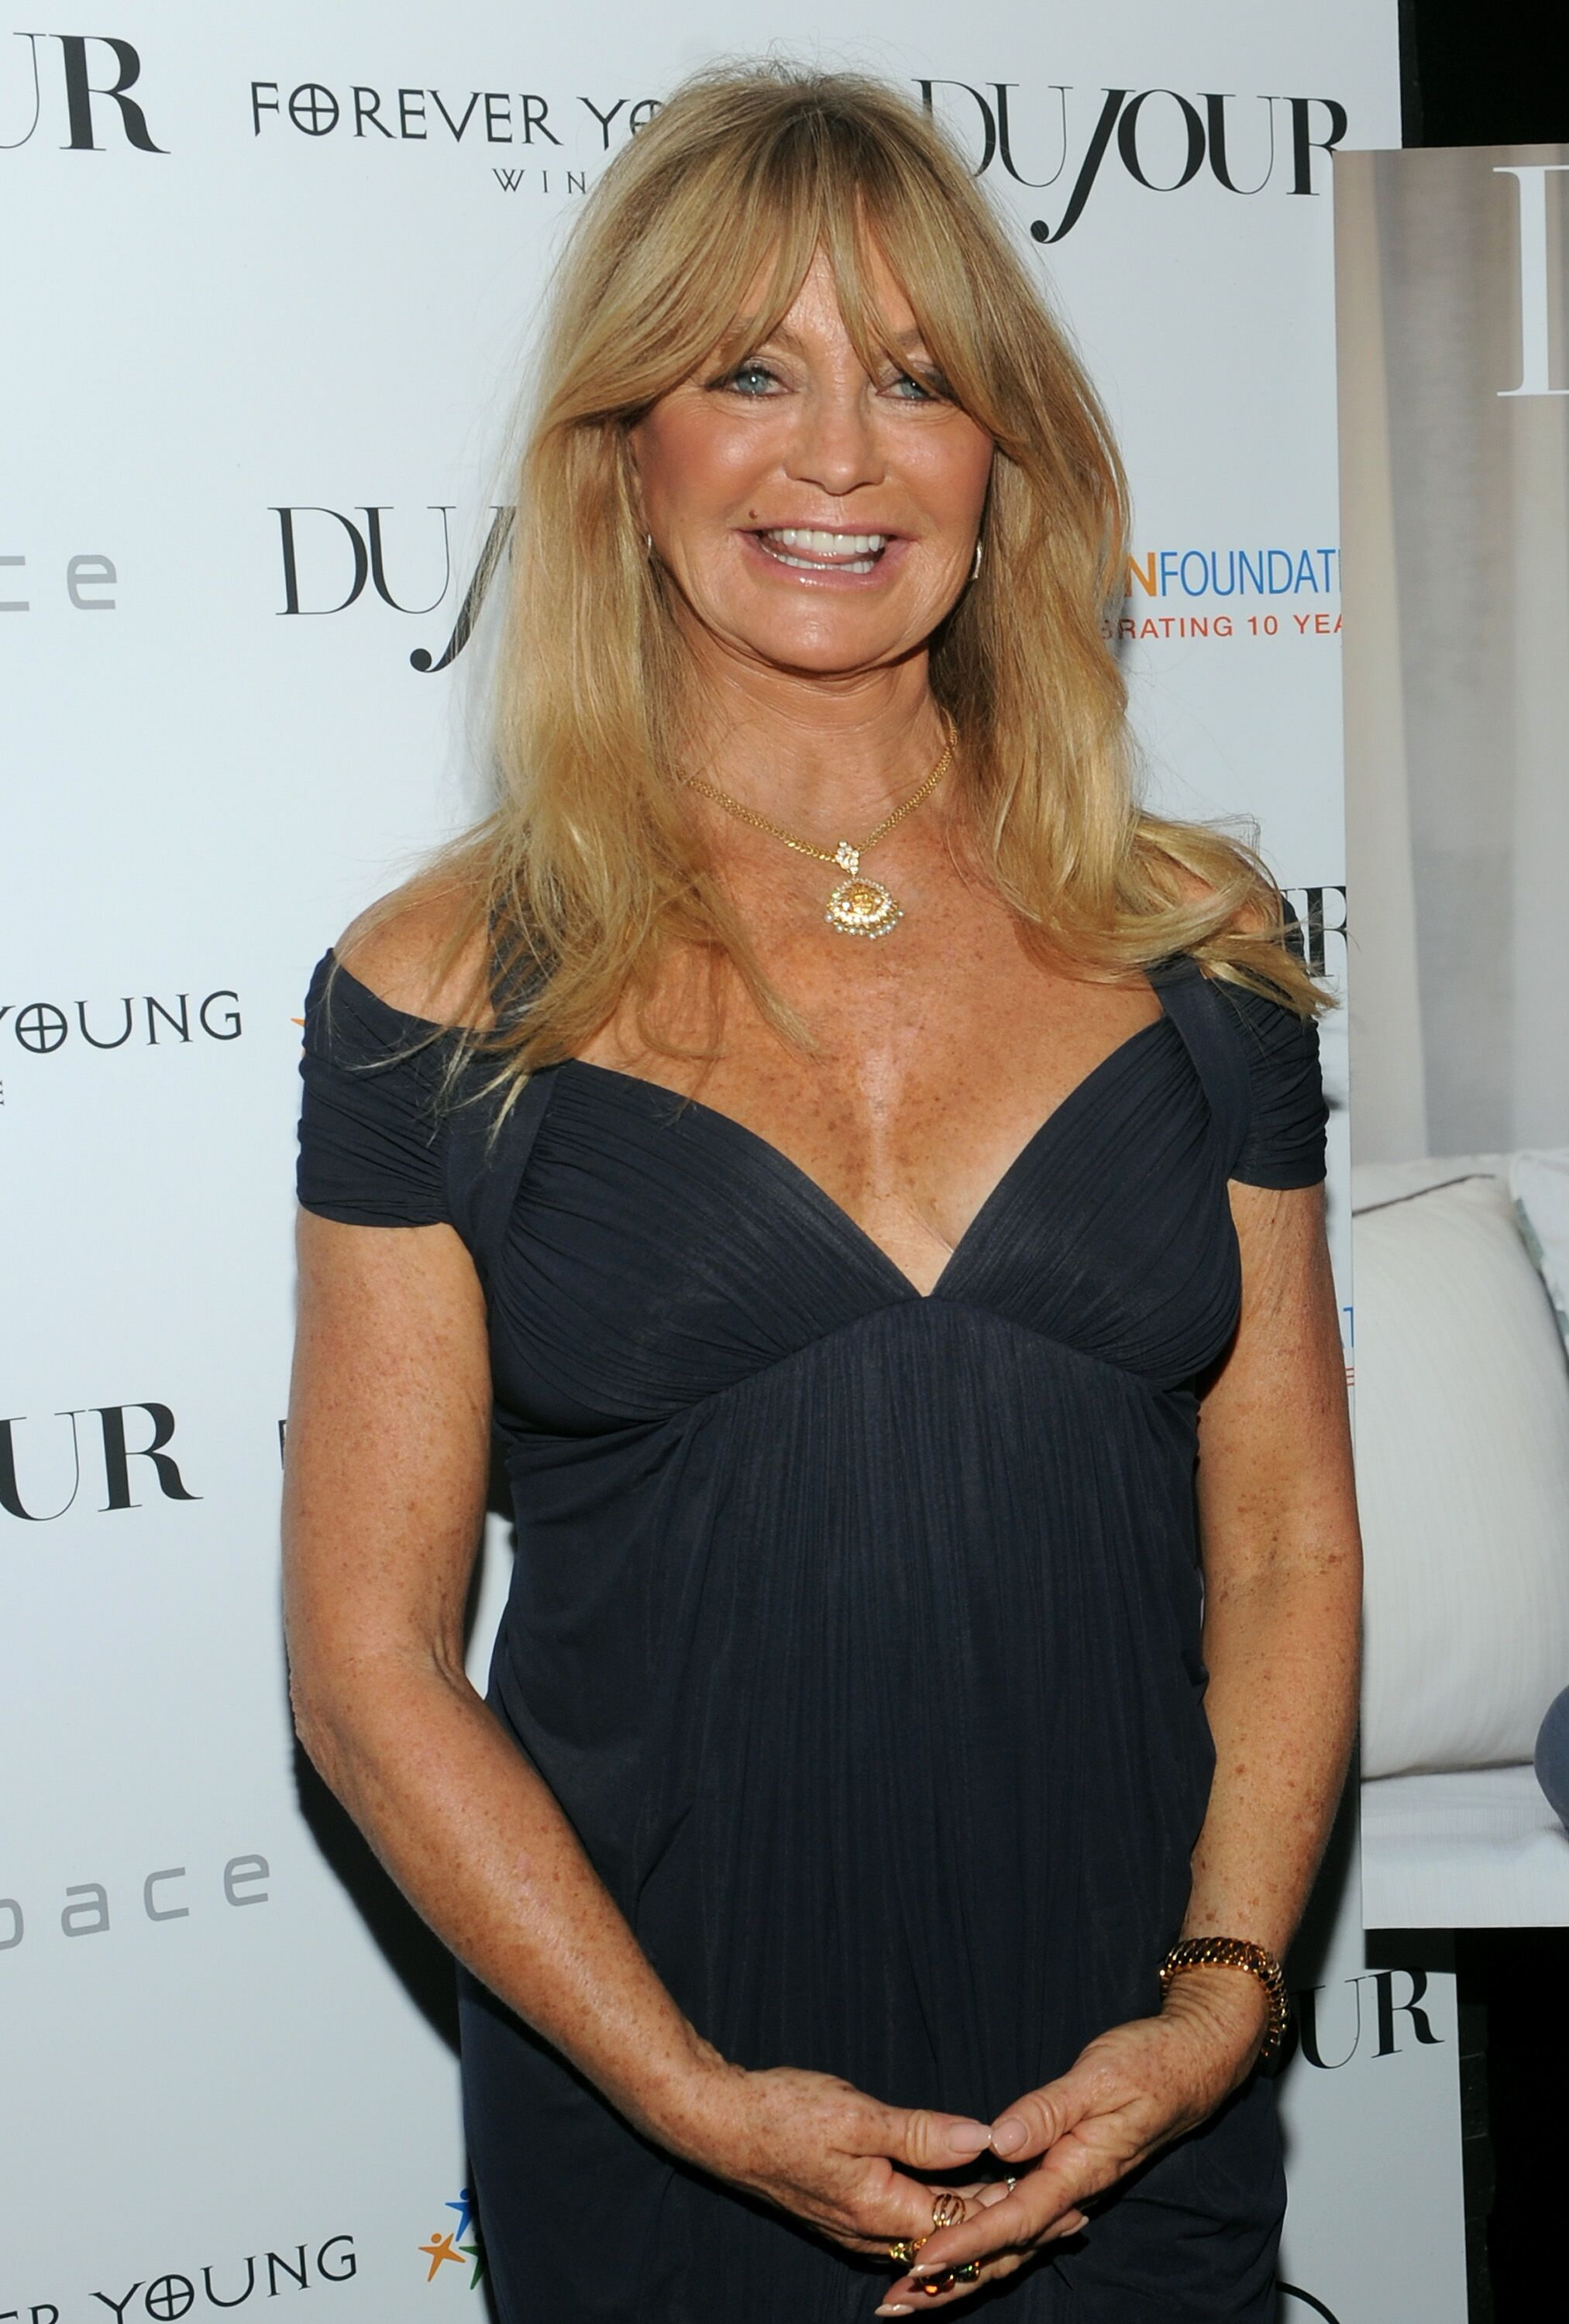 Goldie Hawn at DuJour's celebration of The Hawn Foundation on September 25, 2013. | Source: Getty Images